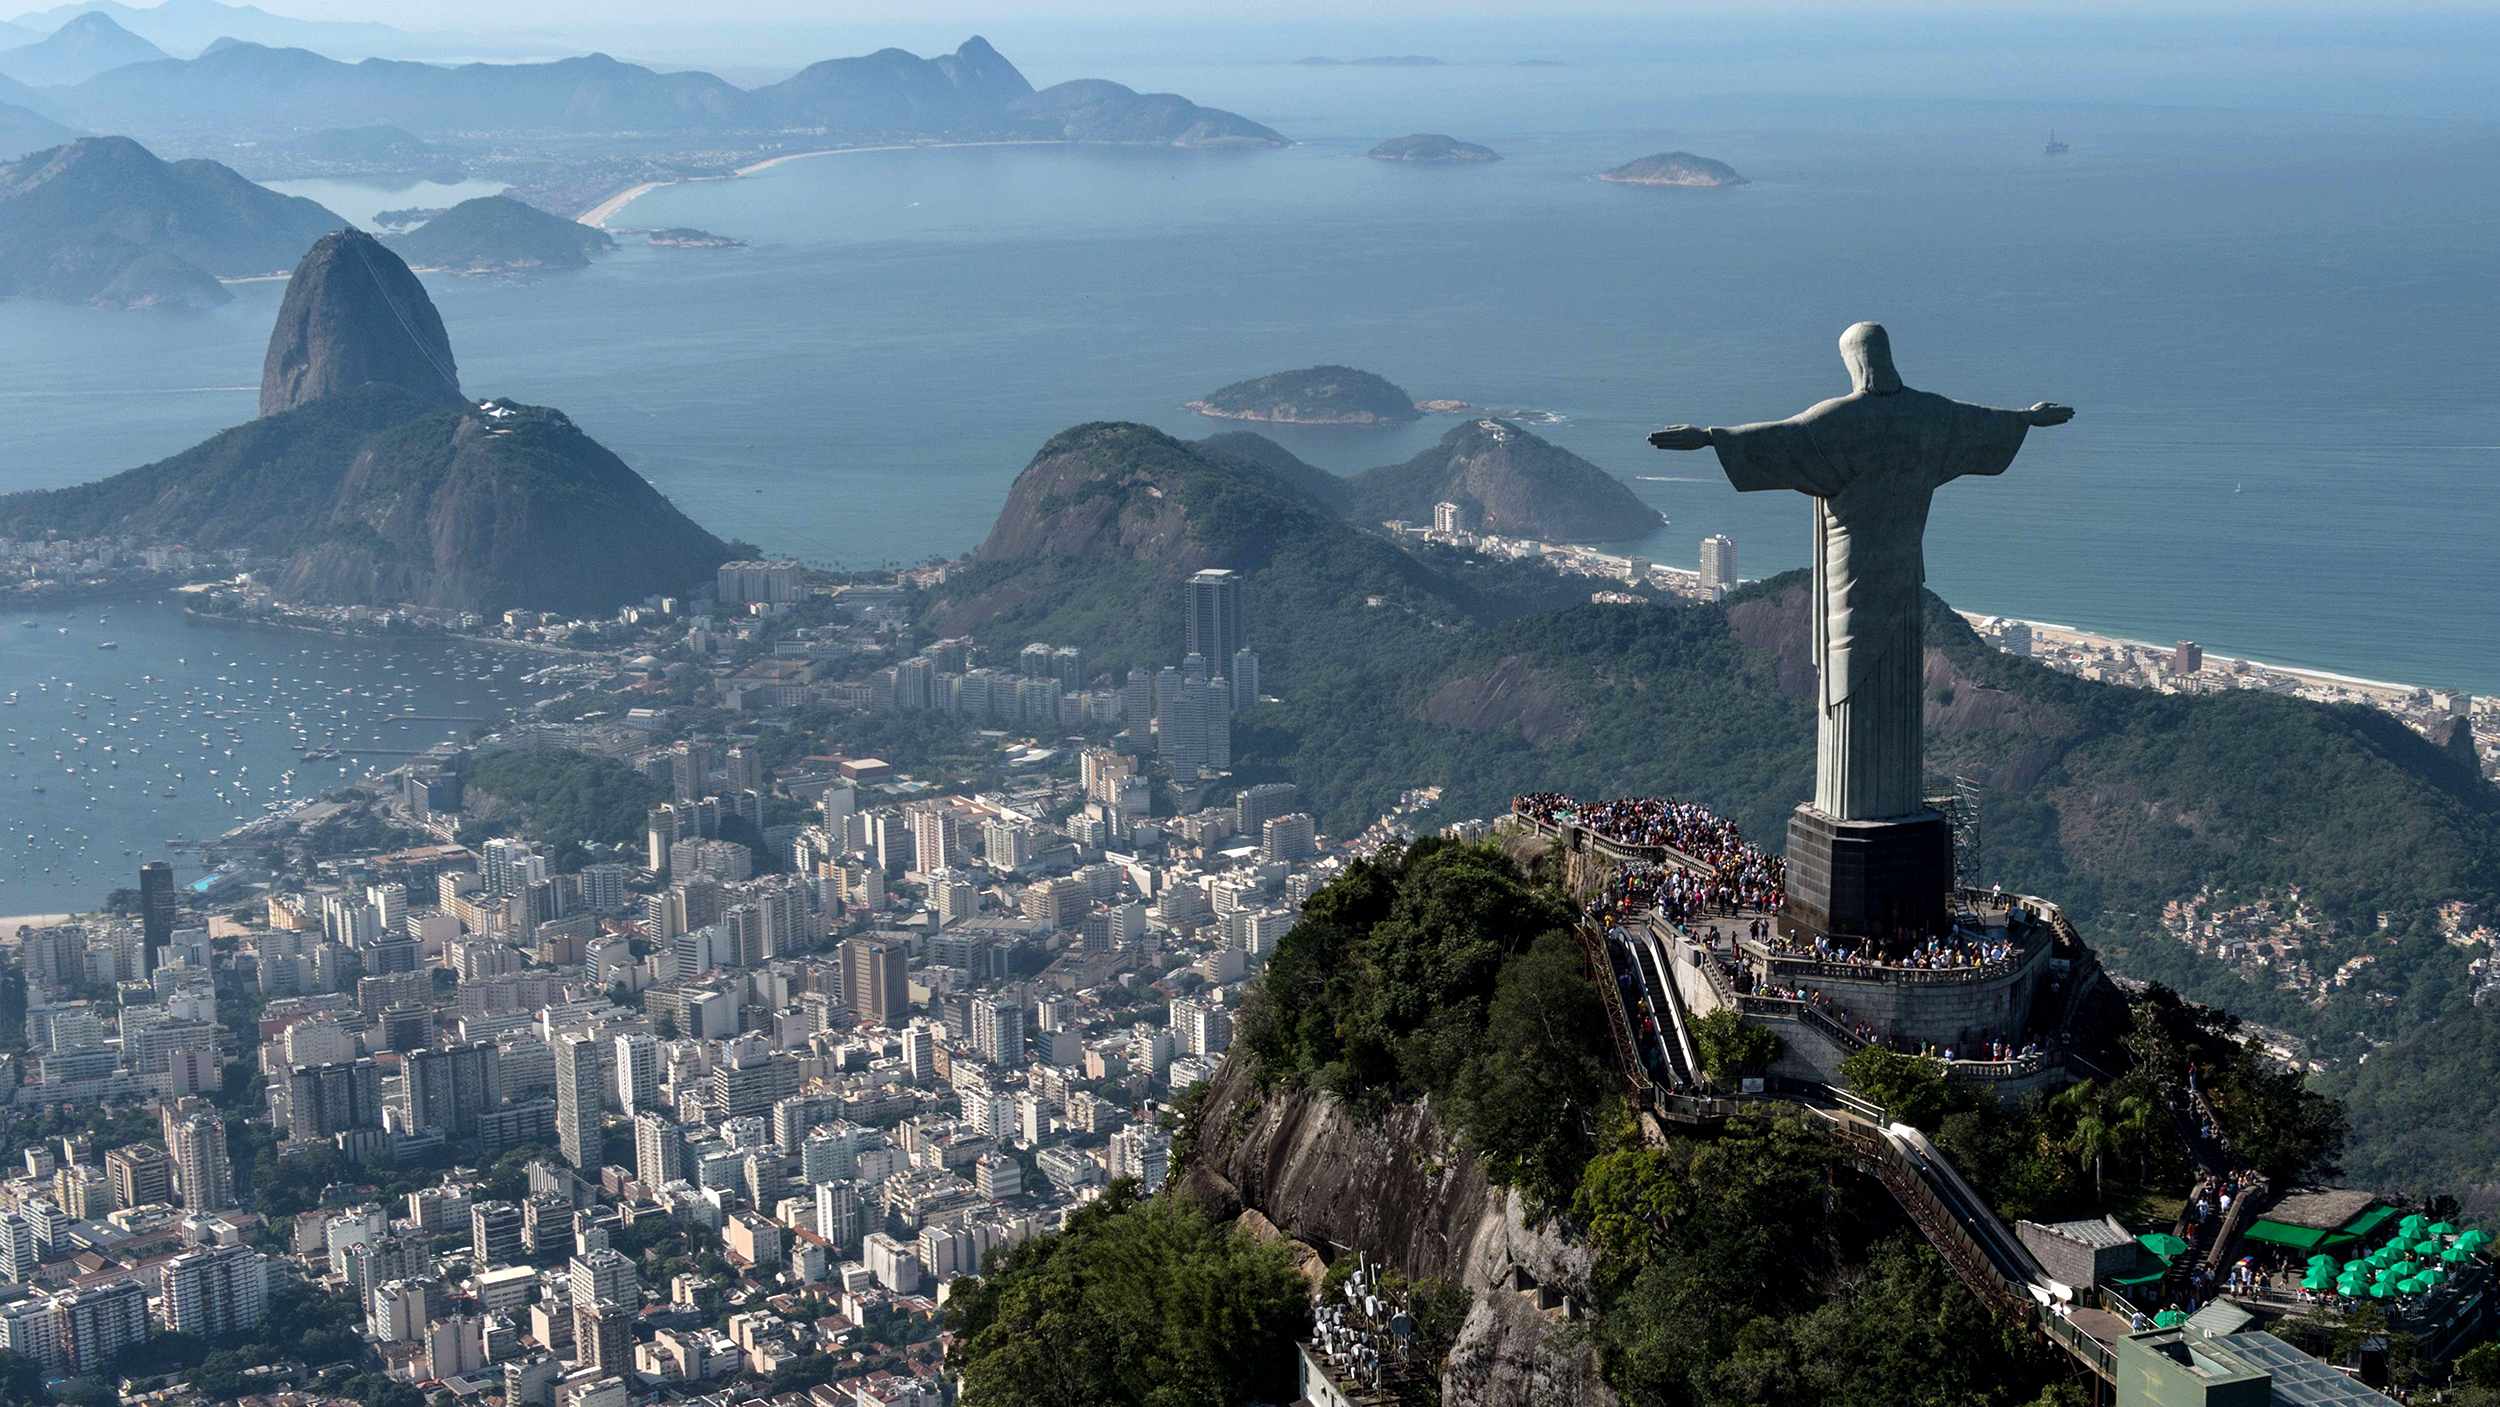 2016 Rio Olympics travel on a budget: 7 tips to save money